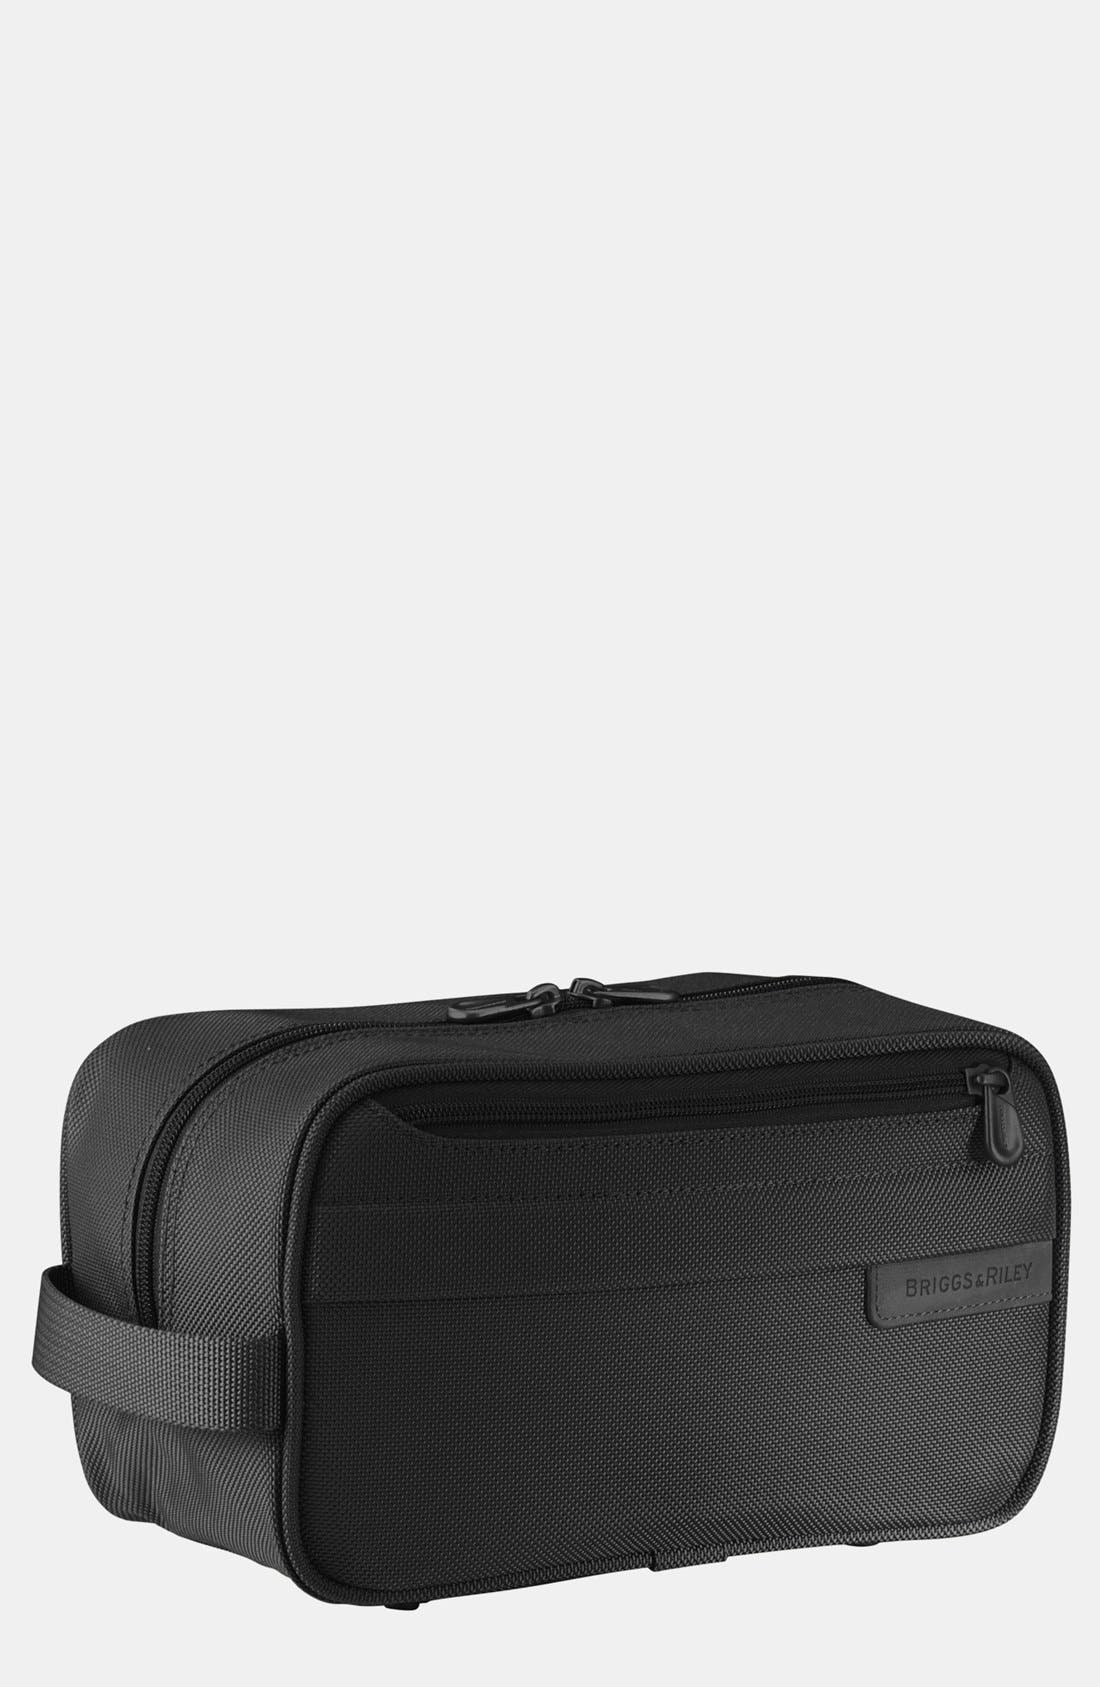 BRIGGS & RILEY 'Baseline' Travel Kit, Main, color, BLACK